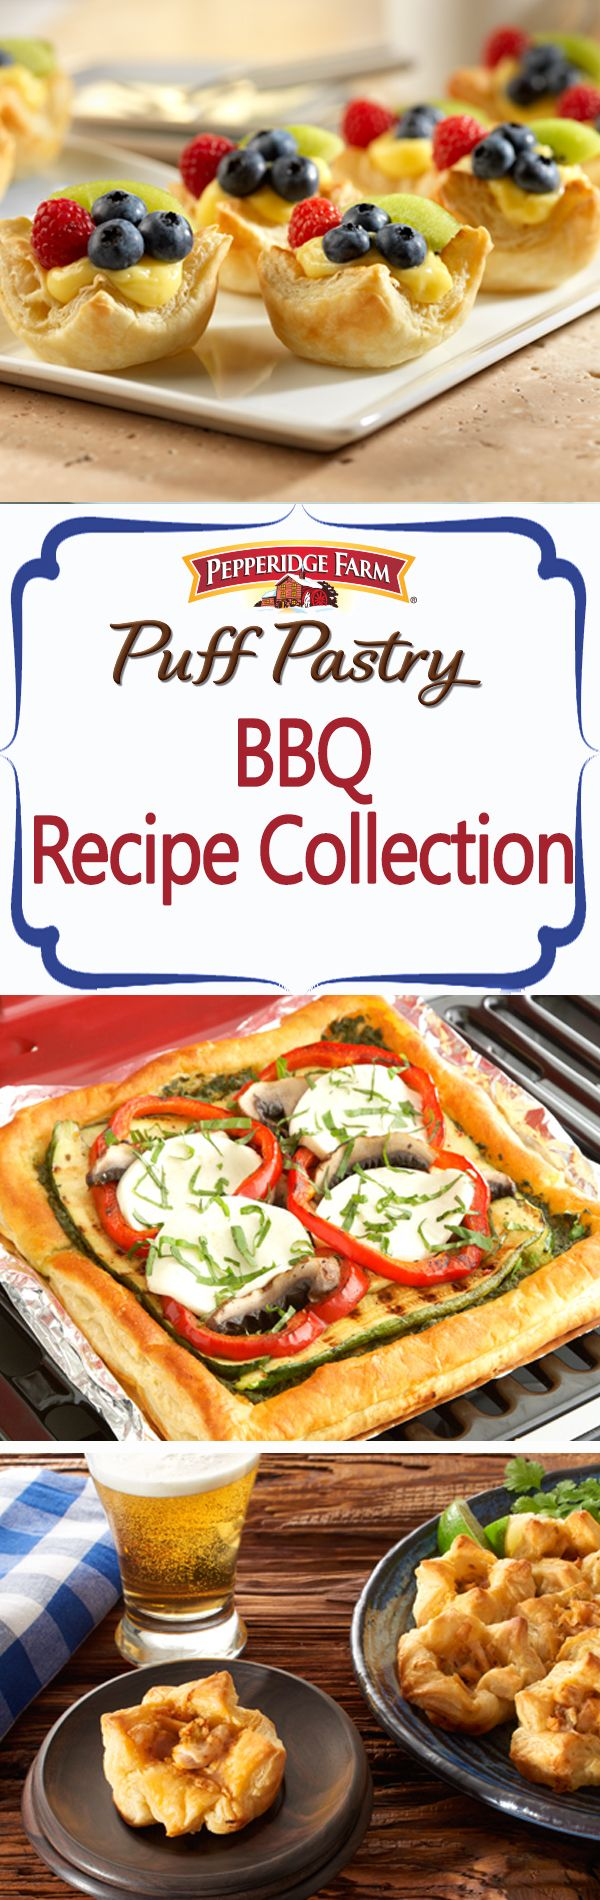 Puff pastry bbq recipe collection every great bbq deserves bbqjuly 4th archives puff pastry forumfinder Images